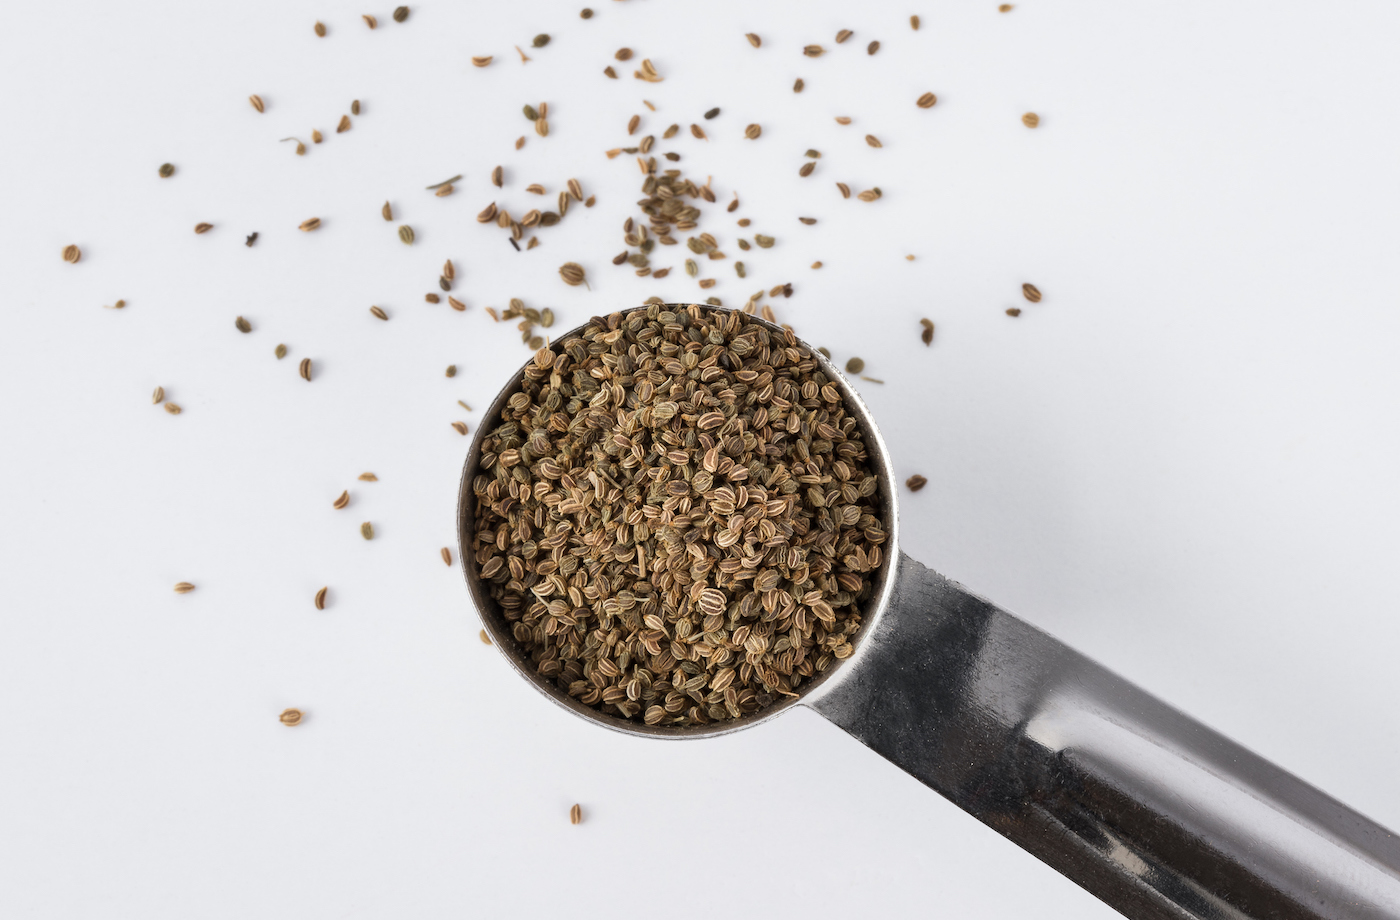 Thumbnail for 5 Celery Seed Benefits That Make It a Truly Underrated Spice